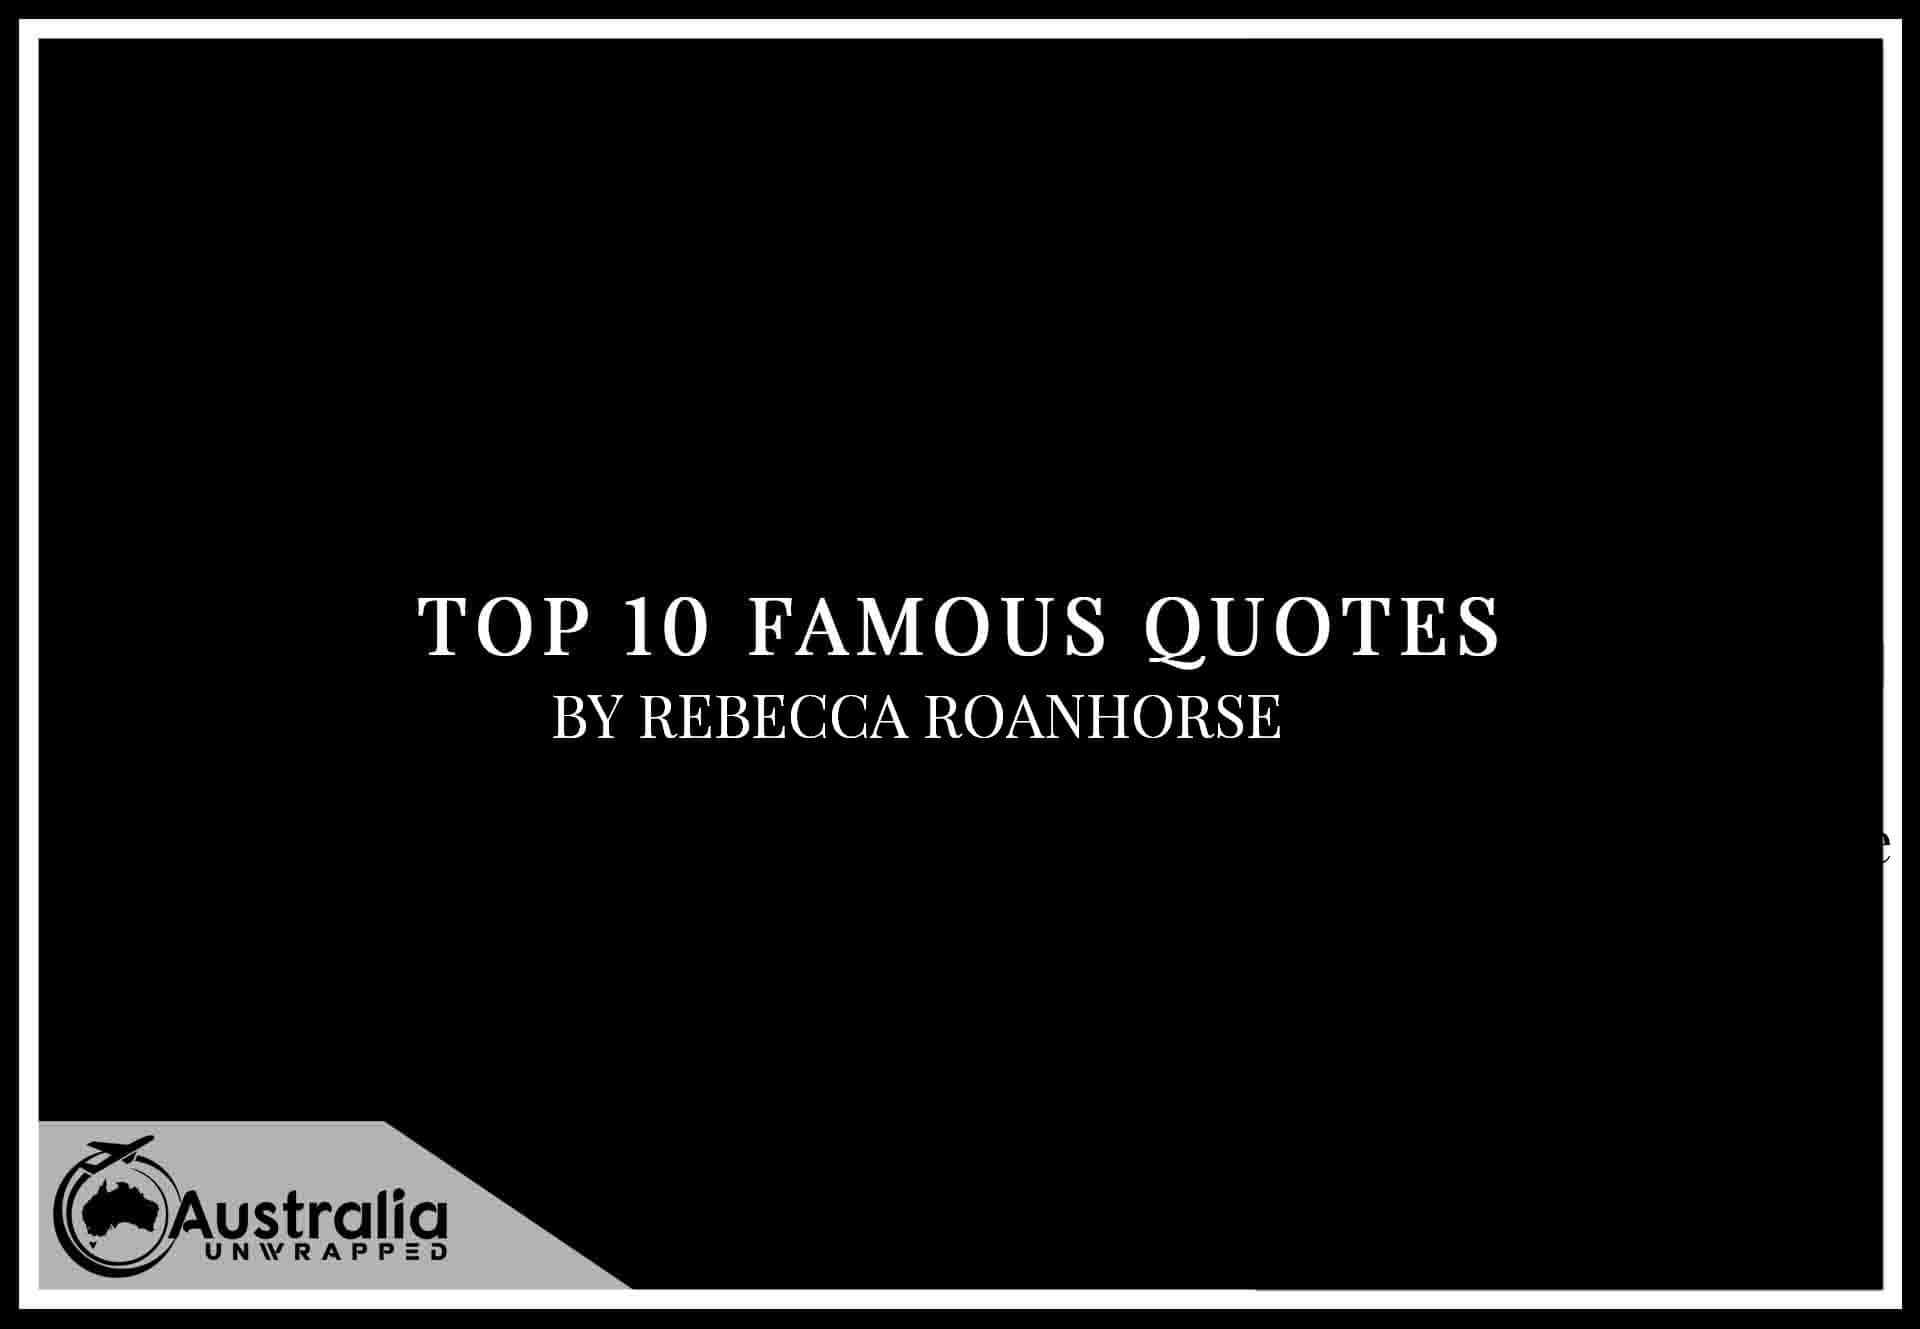 Top 10 Famous Quotes by Author Rebecca Roanhorse